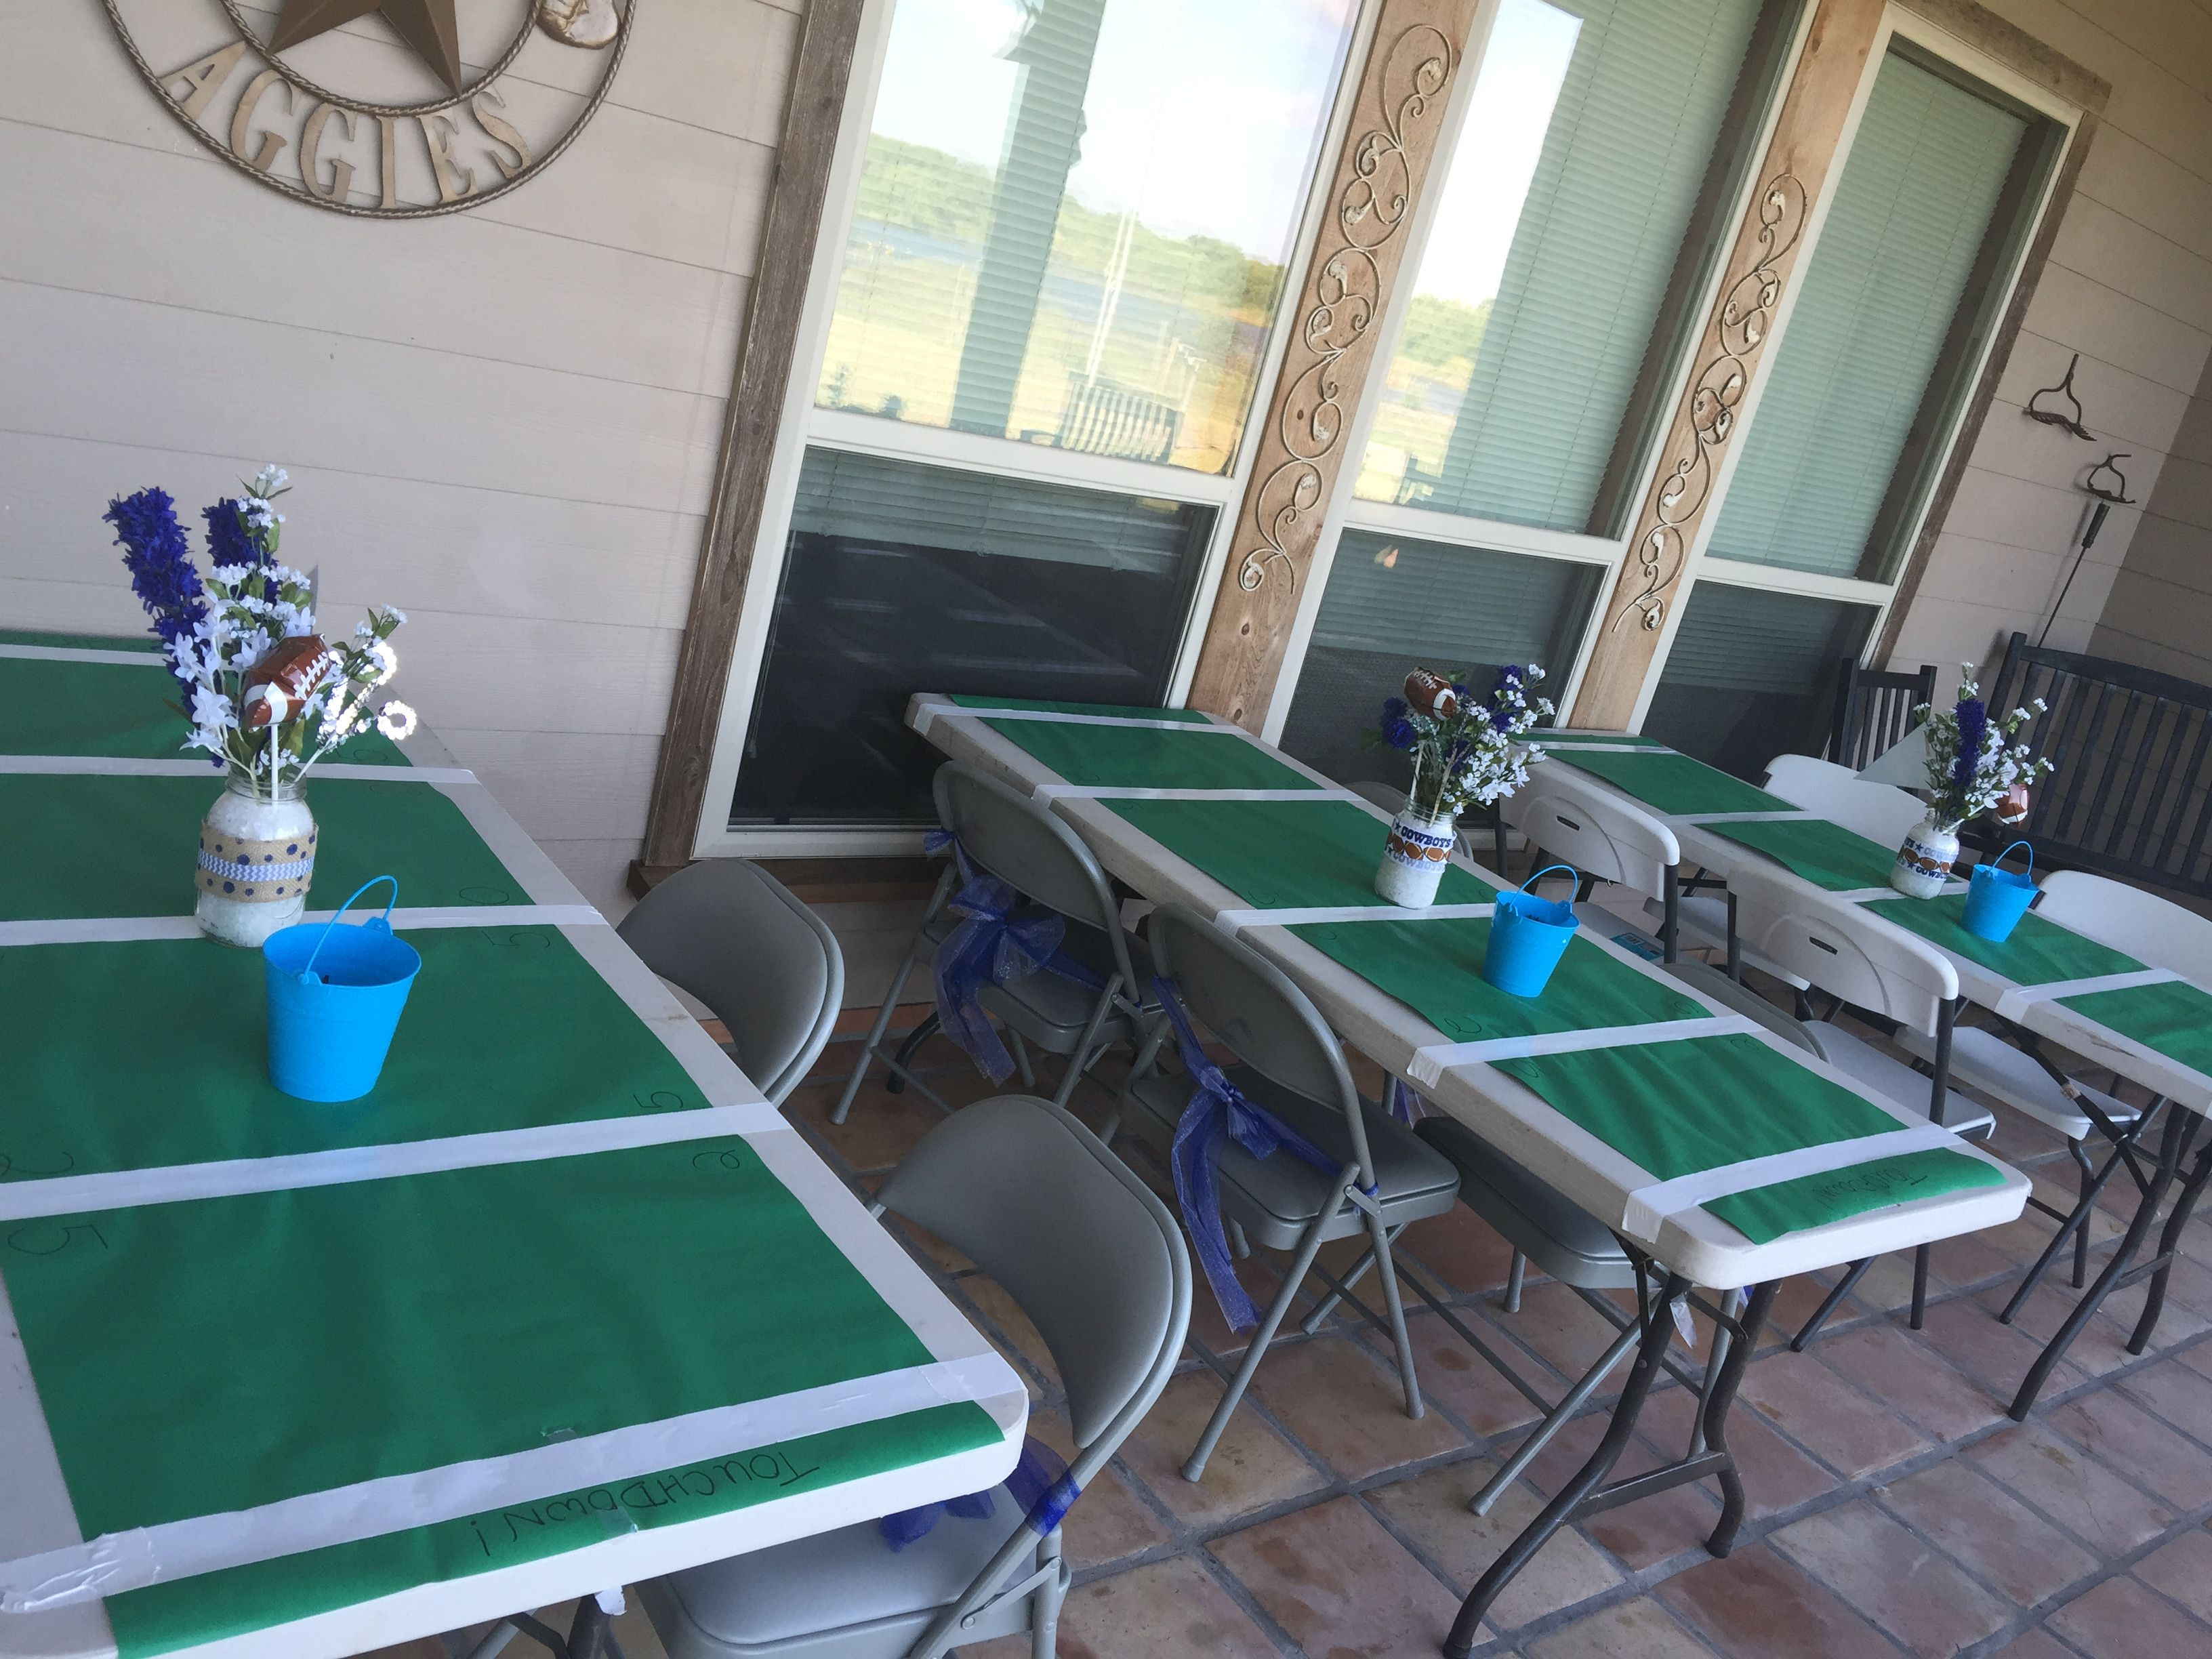 Football Tables For Dallas Cowboys Baby Shower With Buckets Of Crayons For The Kids Dallas Cowboys Baby Shower Dallas Cowboys Birthday Party Cowboy Baby Shower